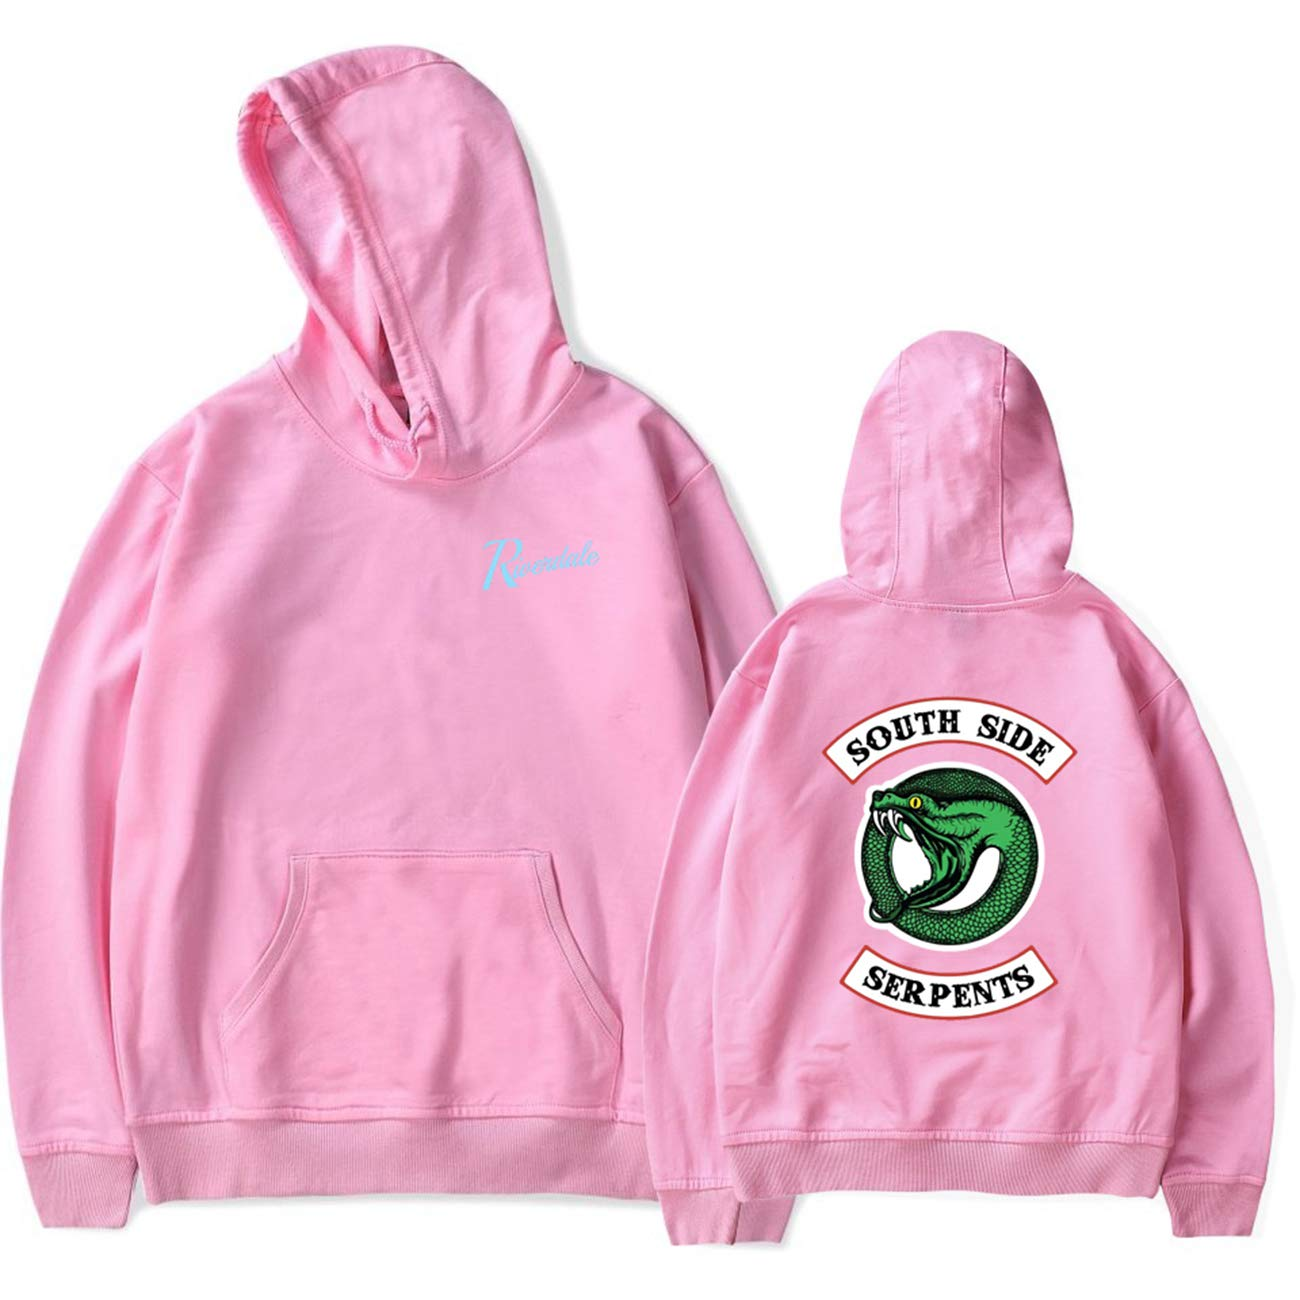 SERAPHY Unisex Hoodie Riverdale Pullover Southside Serpents Sweatshirt Pink L by SERAPHY (Image #1)